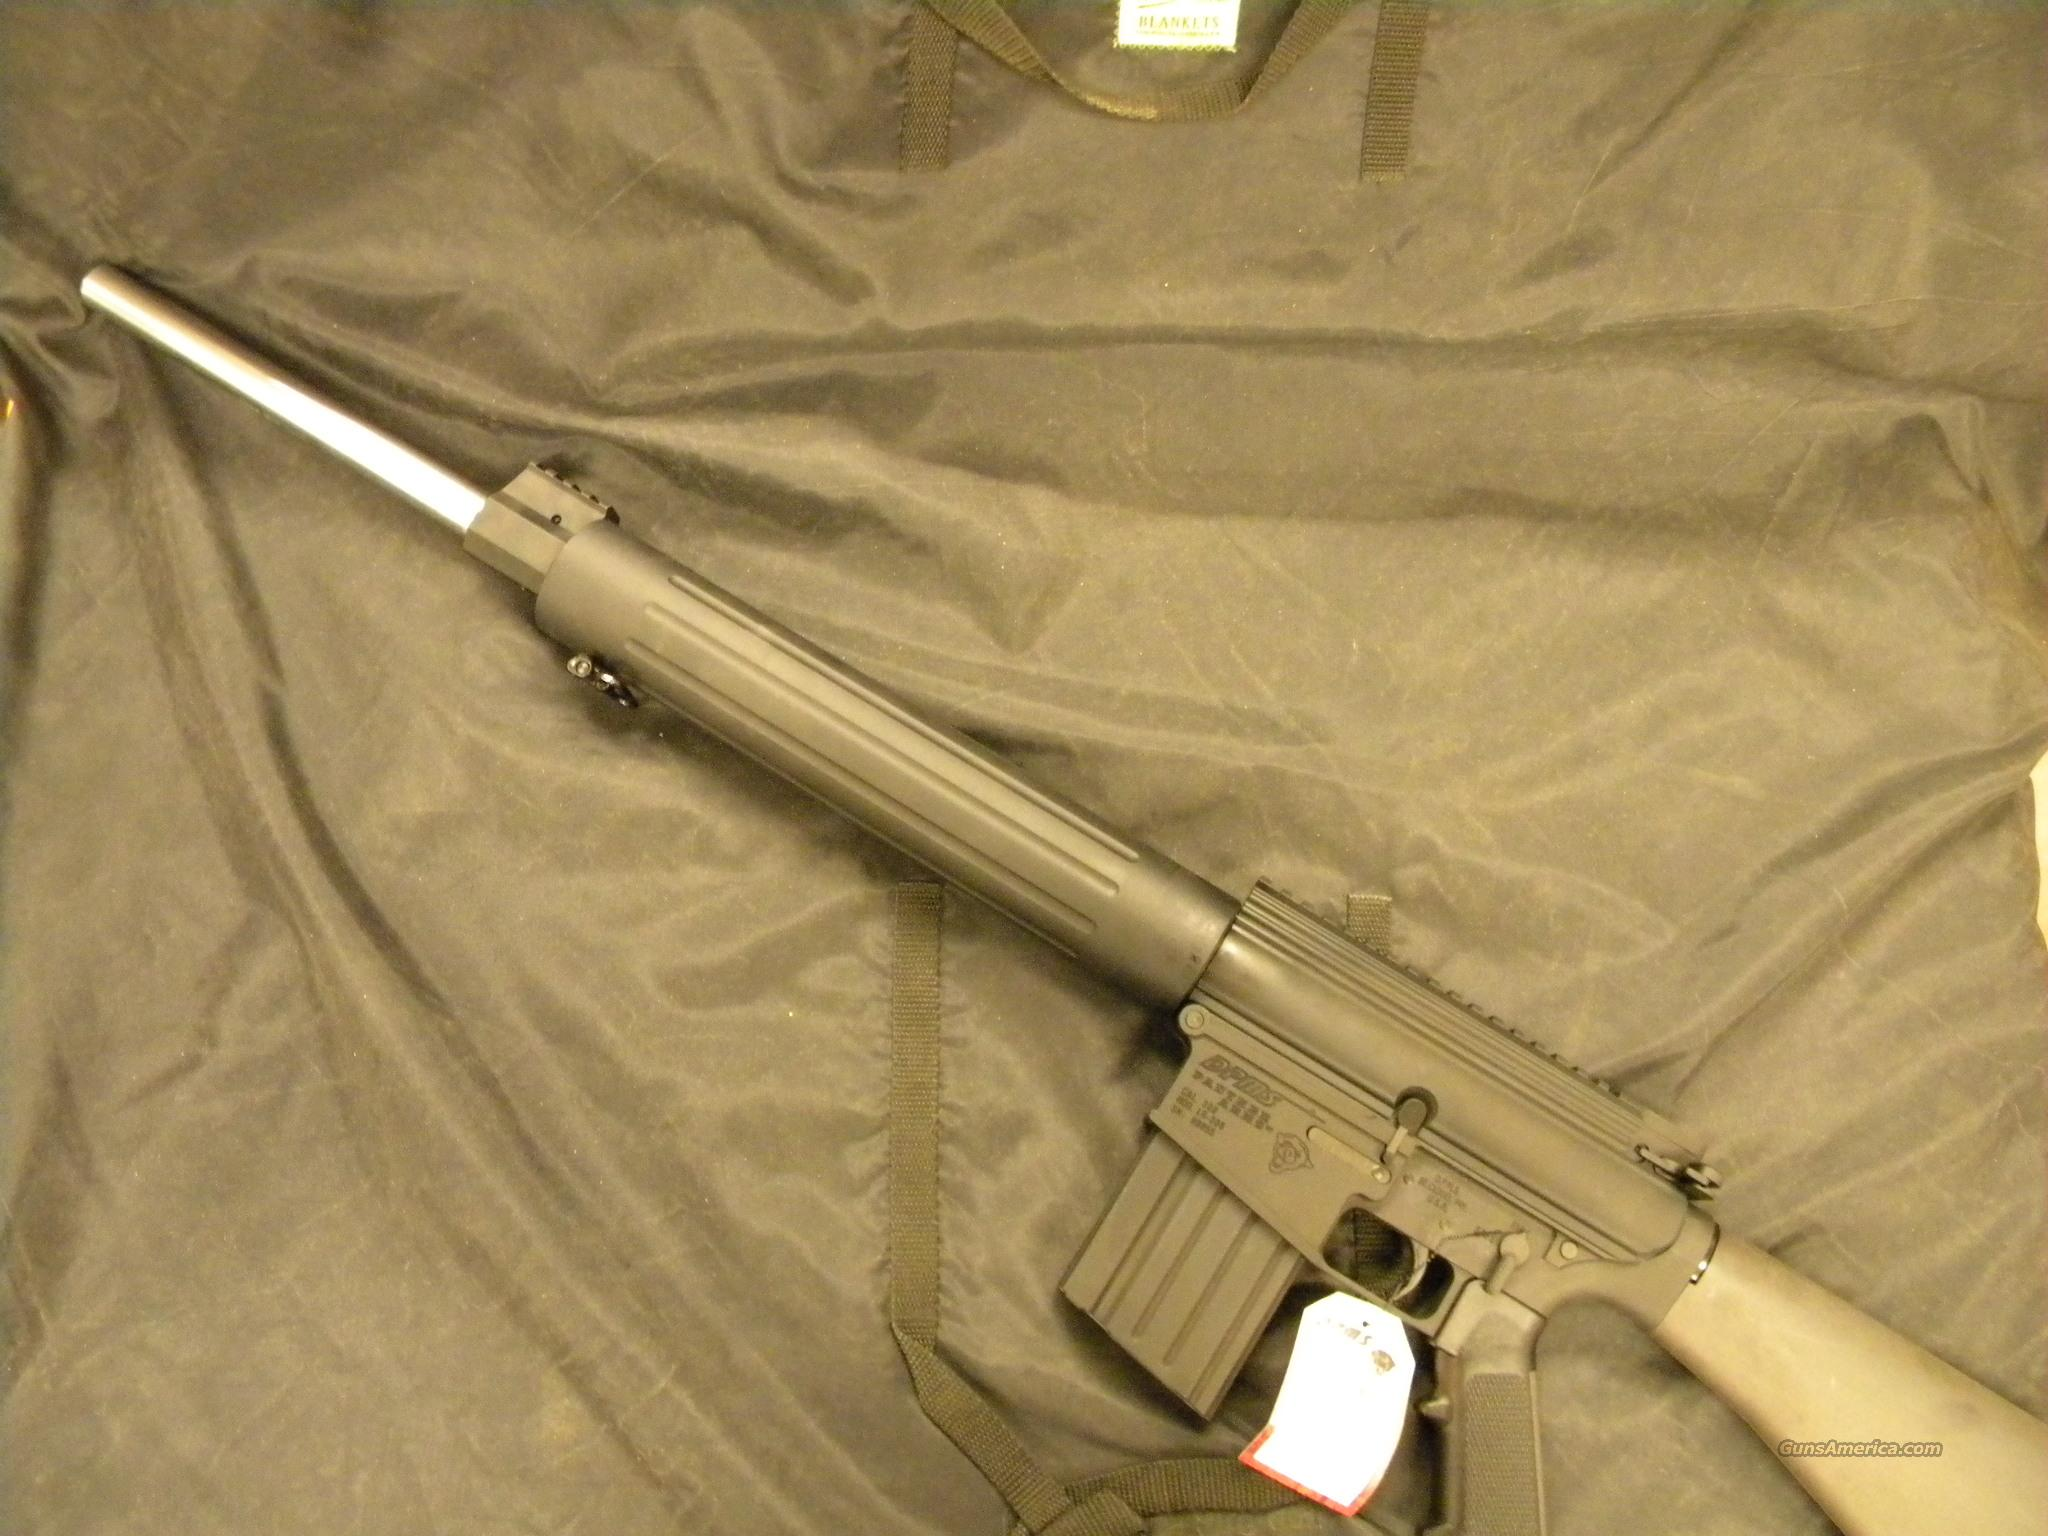 DPMS LR-308 AR15 .308 RIFLE  Guns > Rifles > DPMS - Panther Arms > Complete Rifle